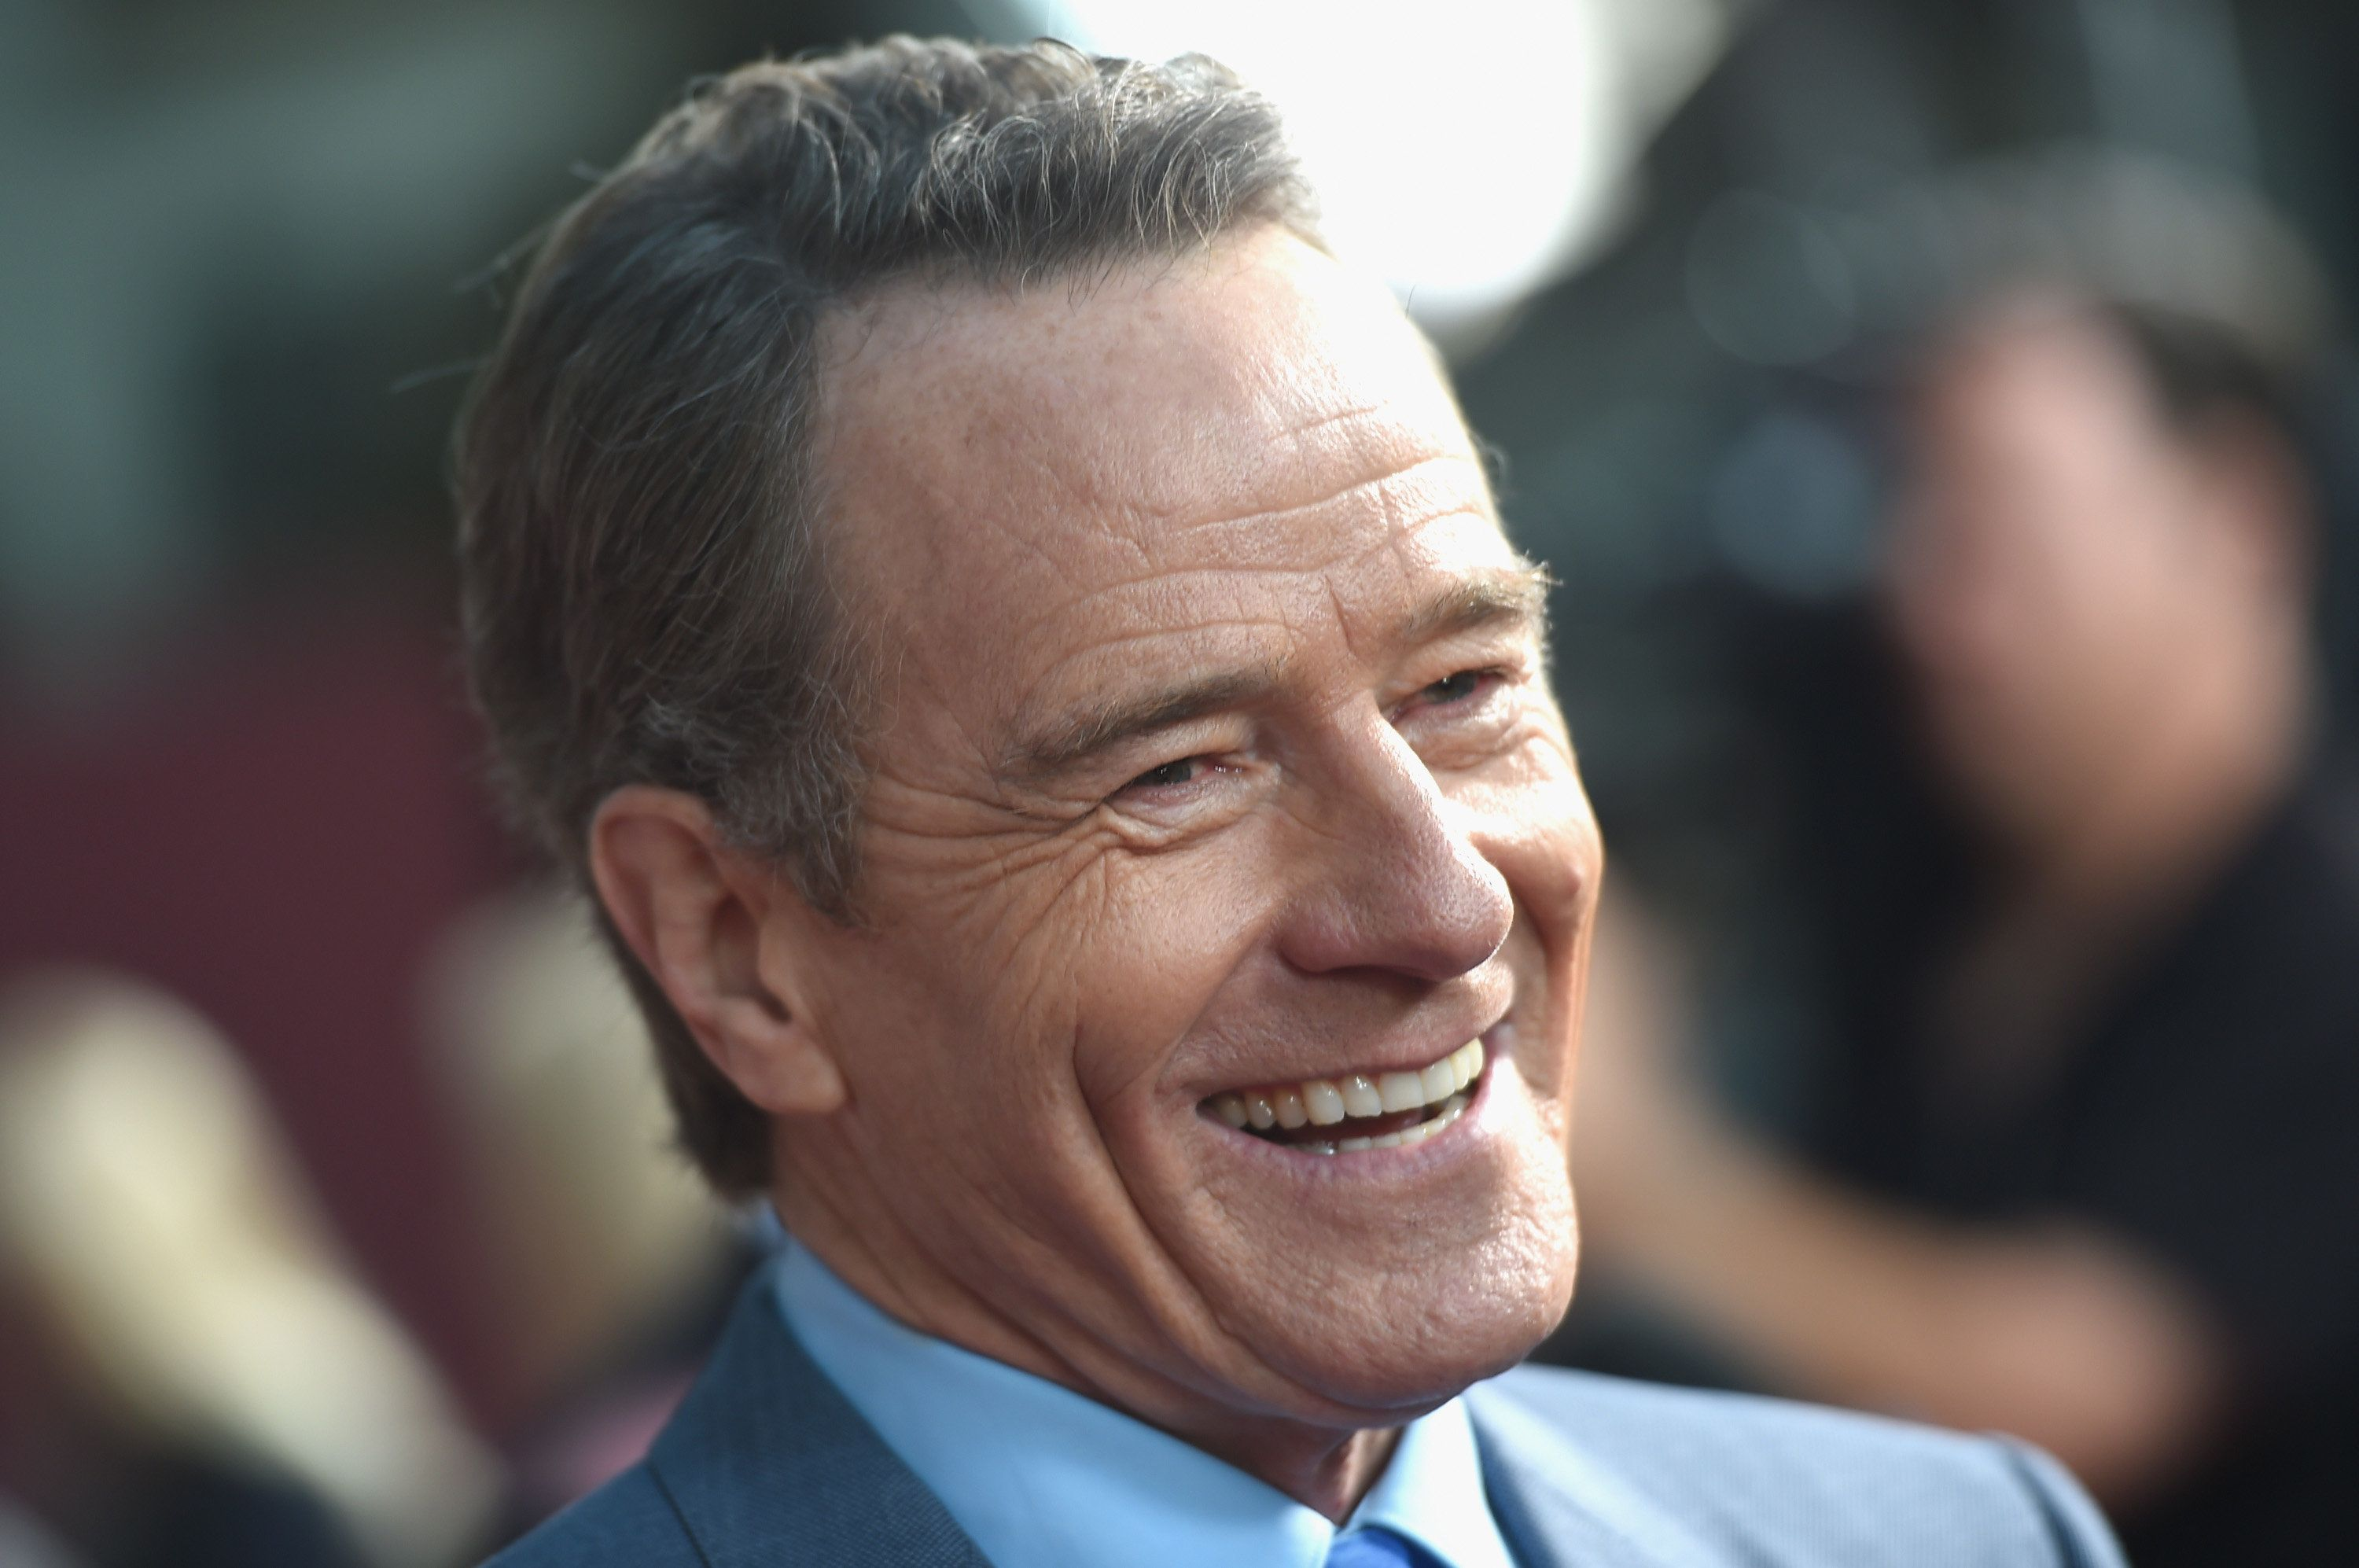 HOLLYWOOD, CA - MAY 10:  Actor Bryan Cranston attends the 'All The Way' Los Angeles Premiere at Paramount Studios on May 10, 2016 in Hollywood City.  (Photo by Kevin Winter/Getty Images)